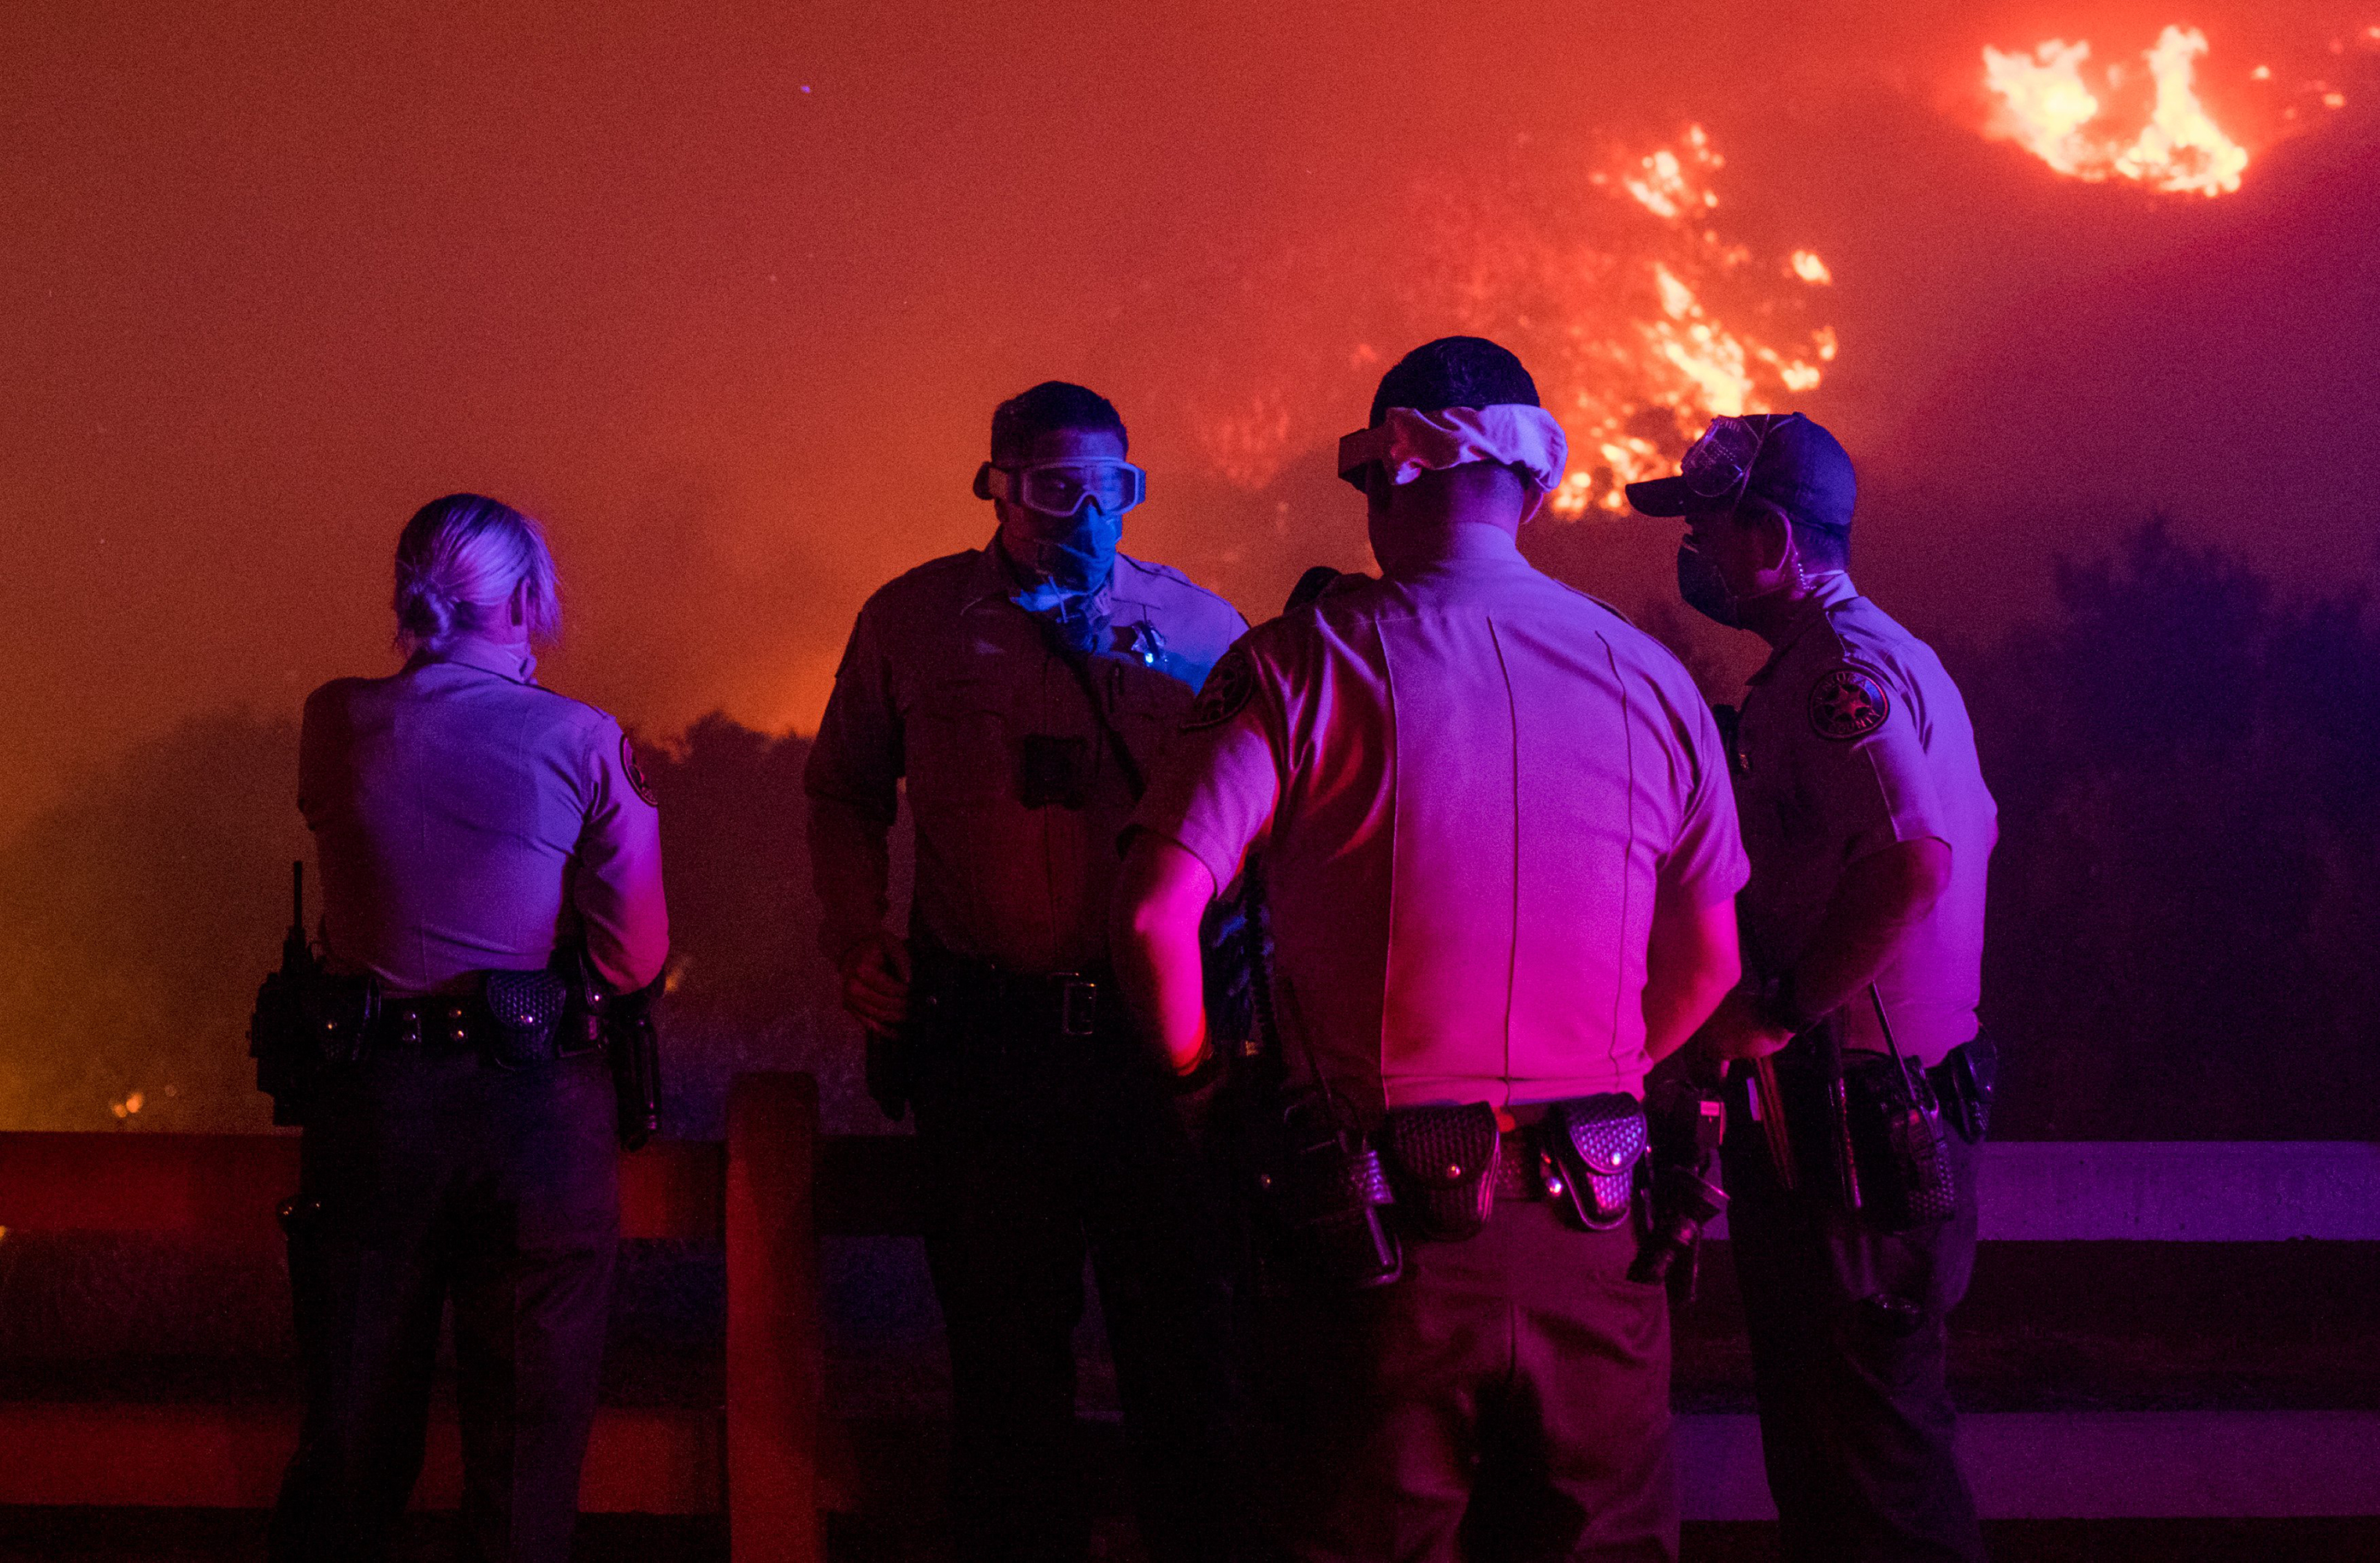 Local law enforcement standby to give mandatory evacuation orders to residents in Thousand Oaks, Calif. as the Wooolsey fire burns over 8,000 acres on Nov. 8.